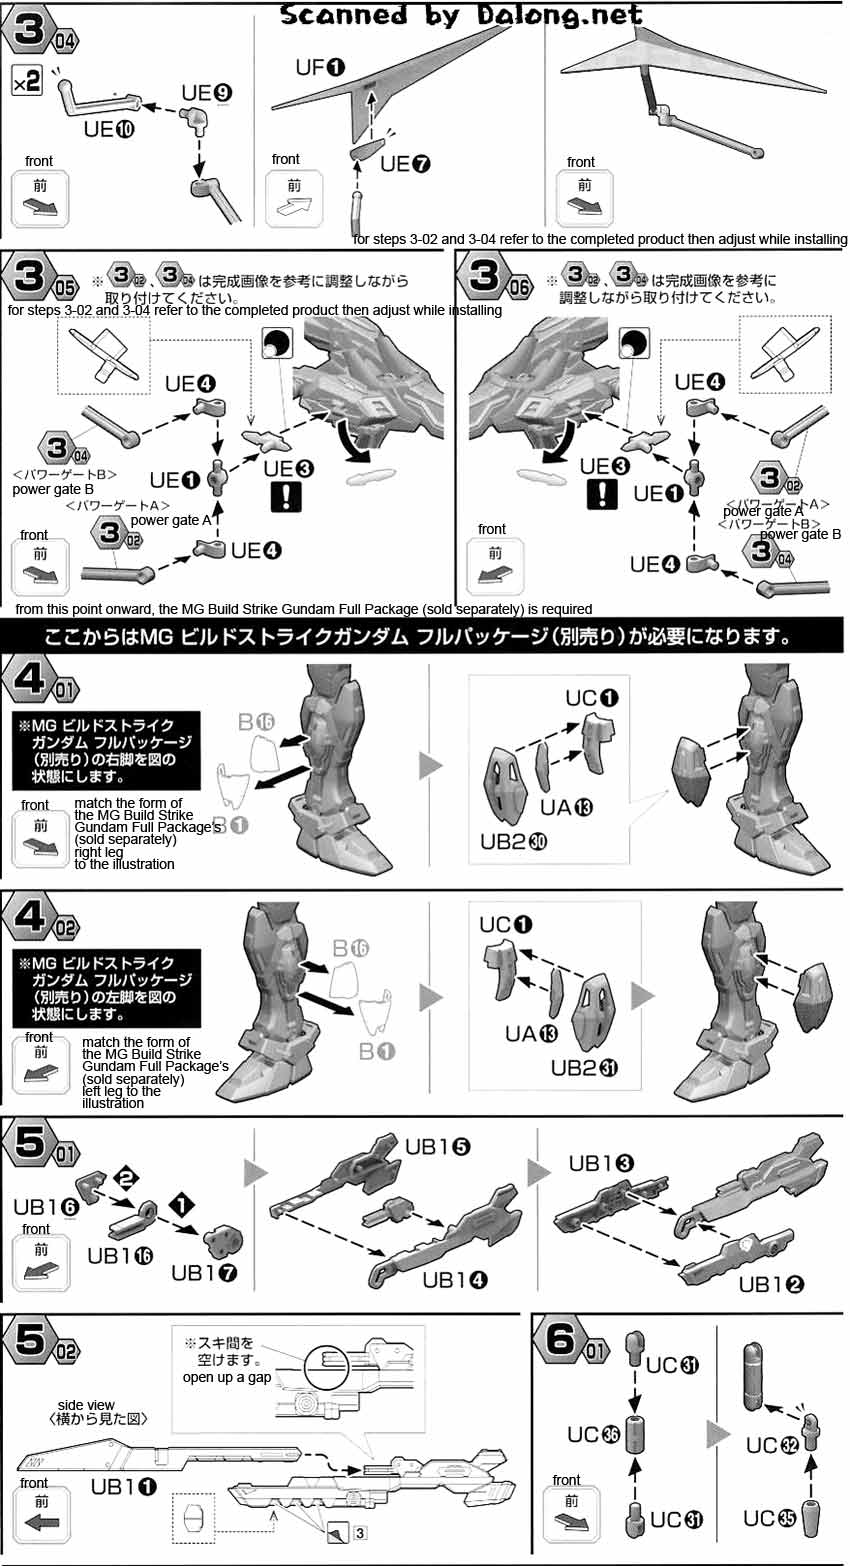 MG Universe Booster UB-01 English Manual & Color Guide